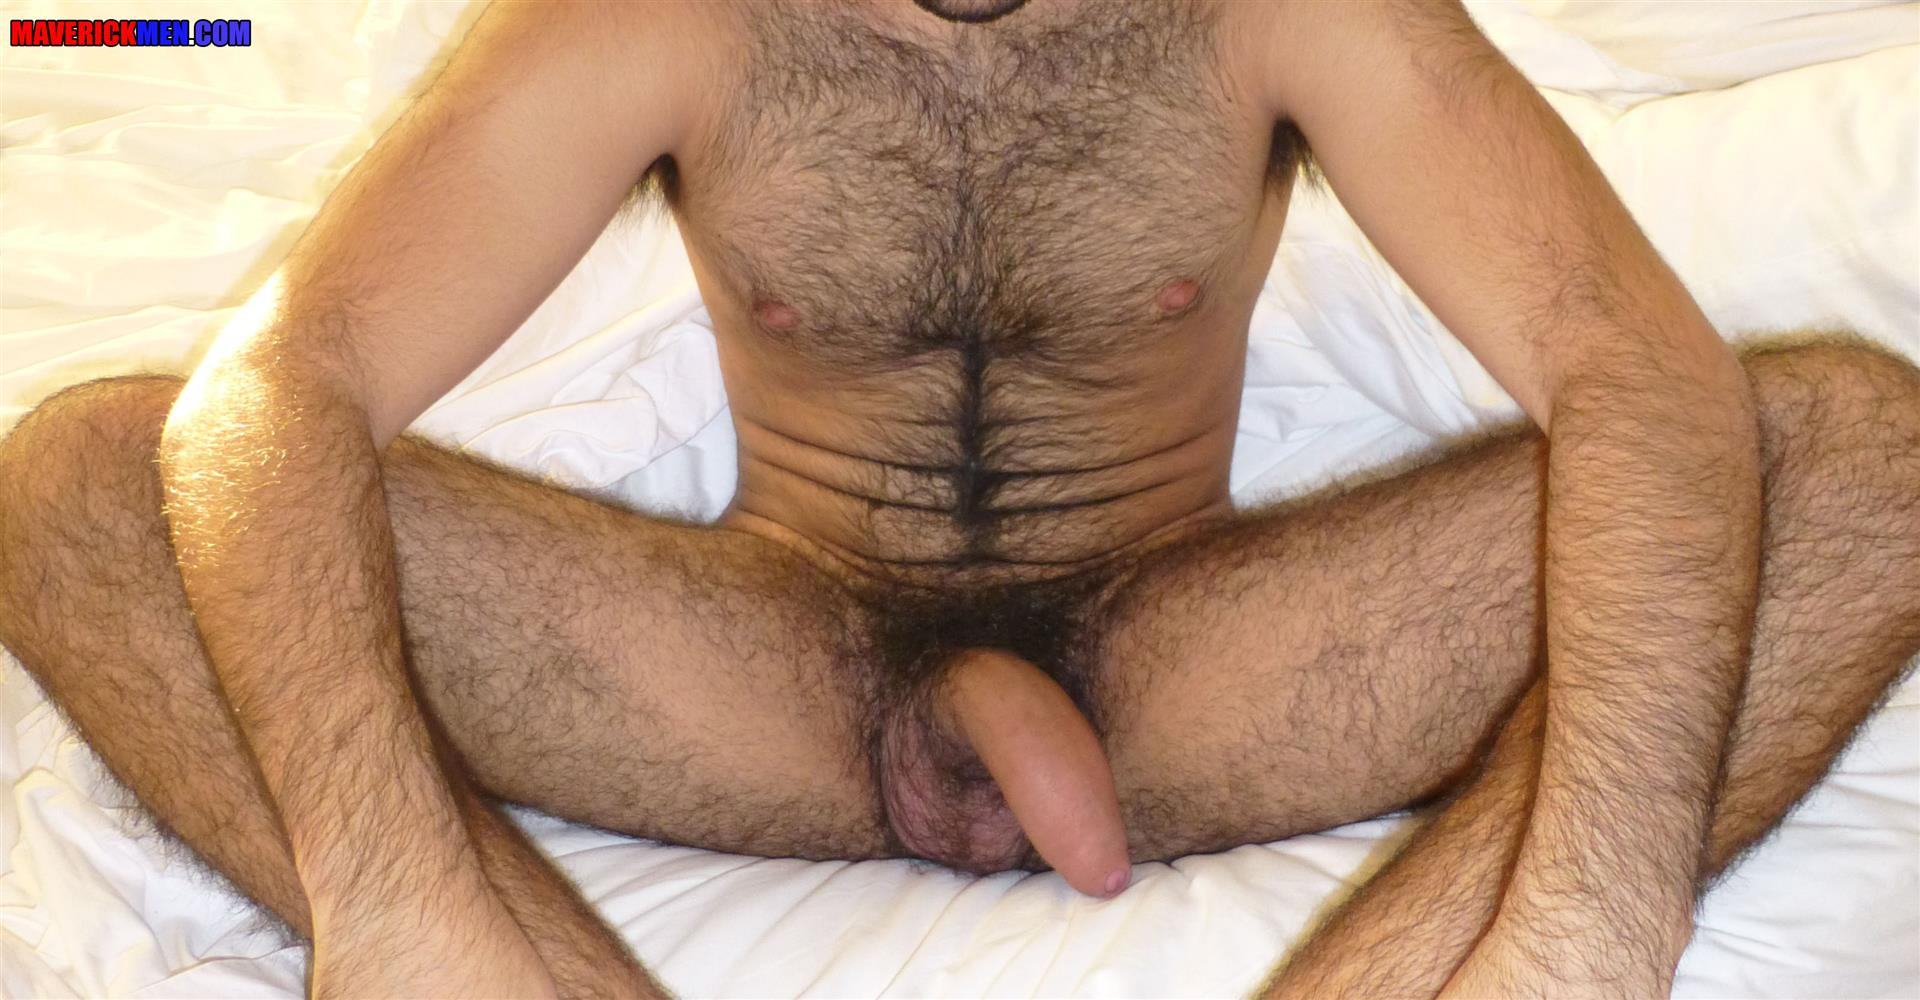 Older men big uncut hot boys have gay sex